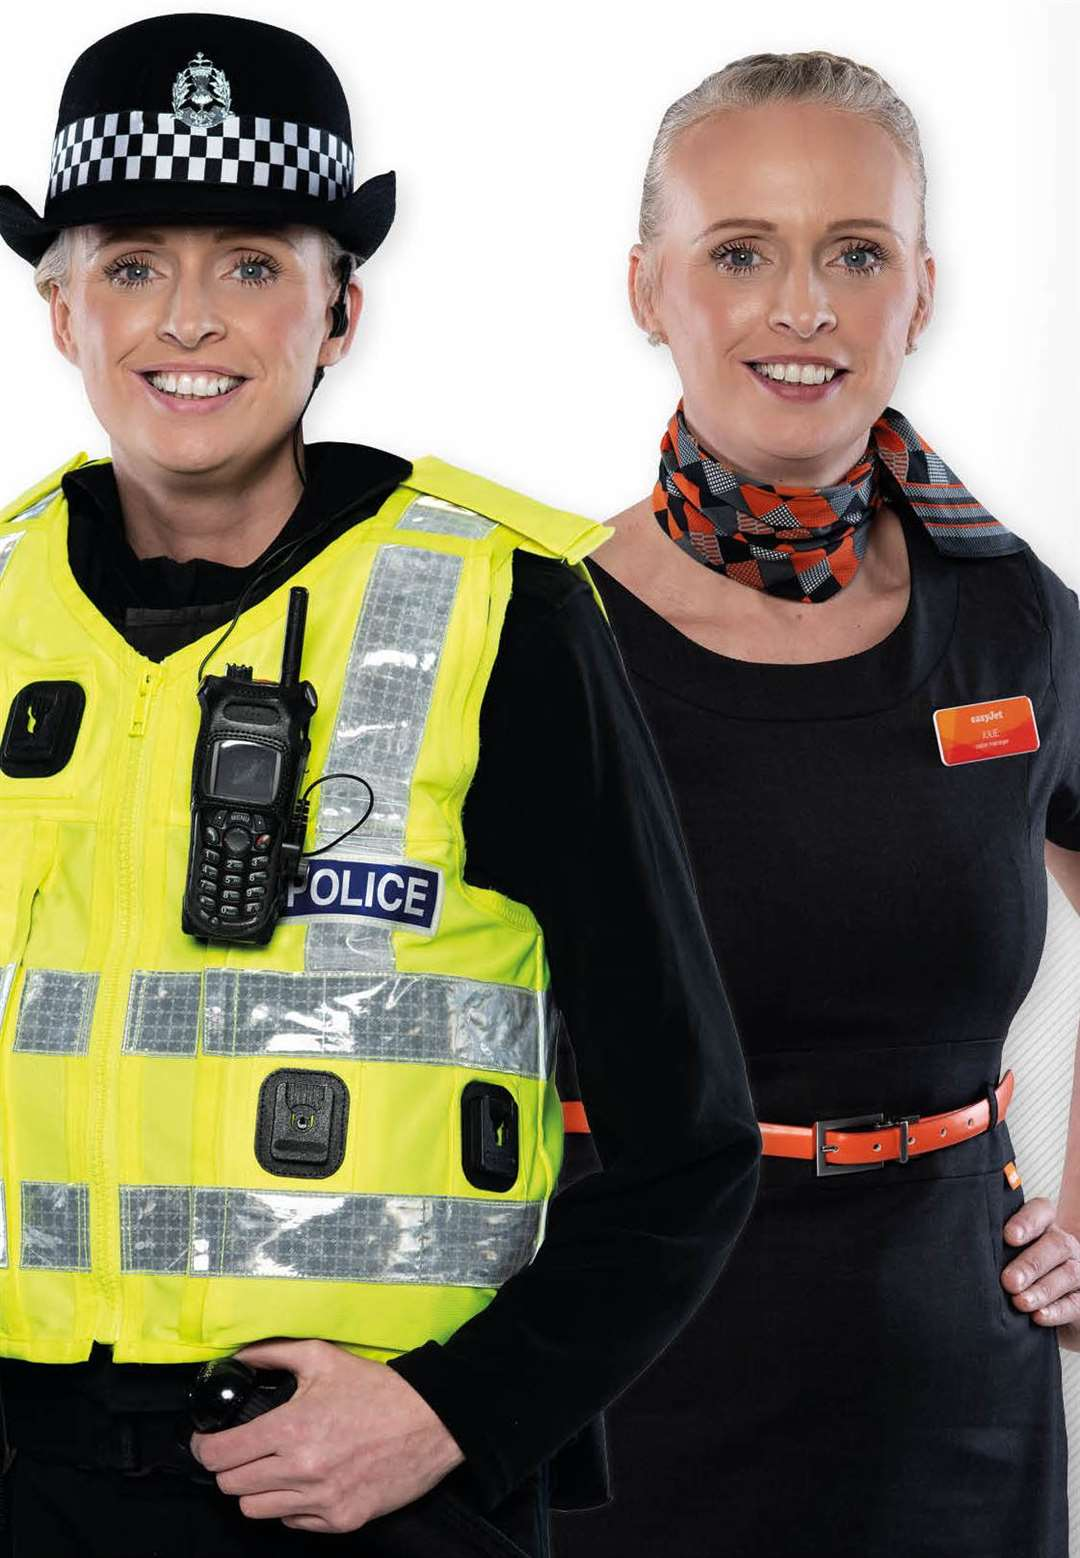 Becoming a Special Constable can help people gain new skills for their full-time work.